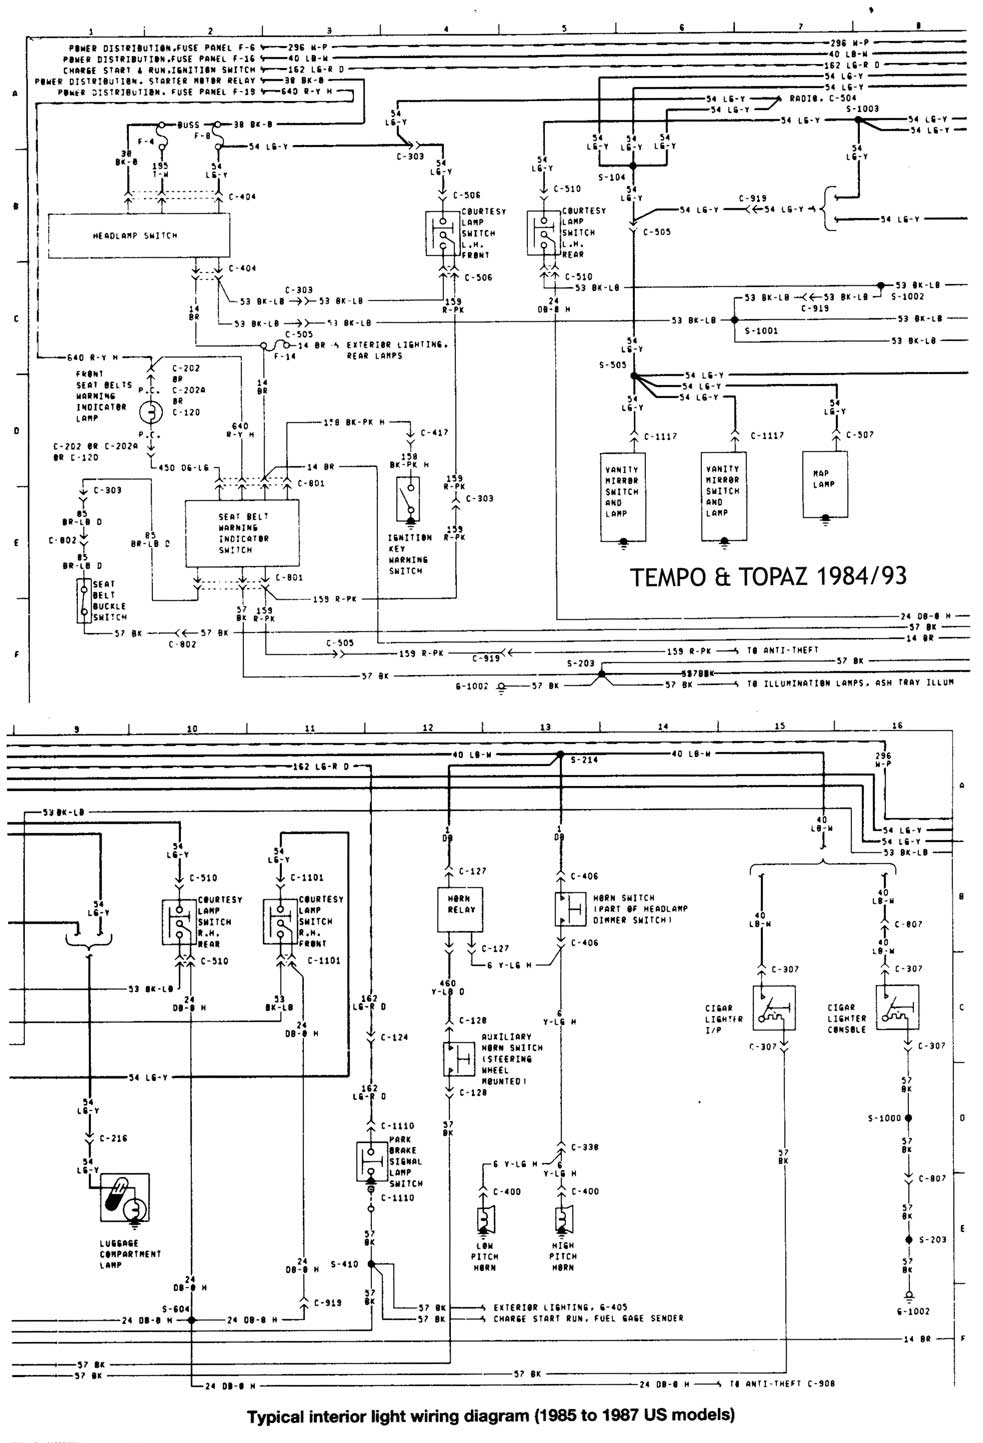 Dryer Keeps Blowing Fuse Box likewise Honda Accord88 Radiator Diagram And Schematics also 1994 Ford F 350 Wiring Diagram also 1293155 Electrical Voltage Regulator Wiring in addition rsteer. on 1992 ford tempo